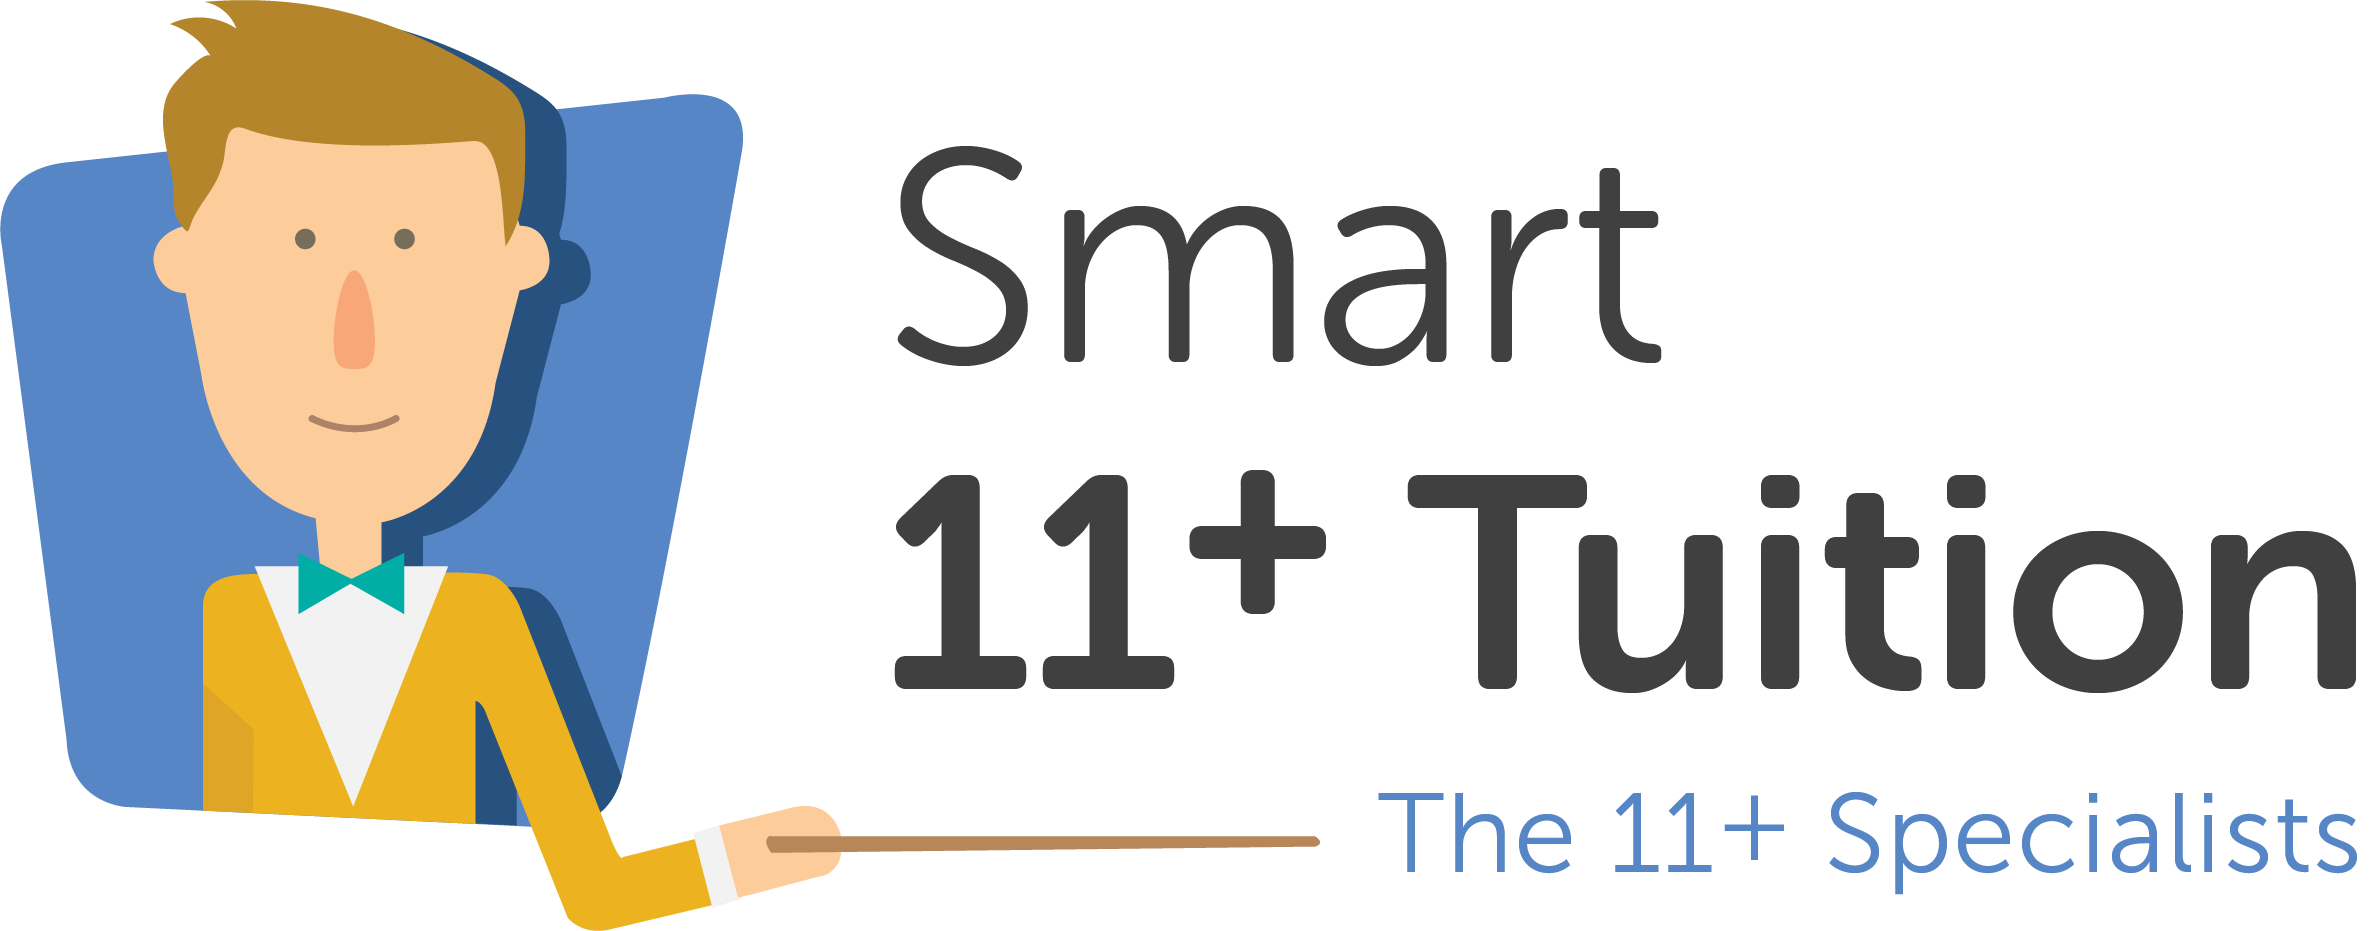 The 11 Plus Specialists